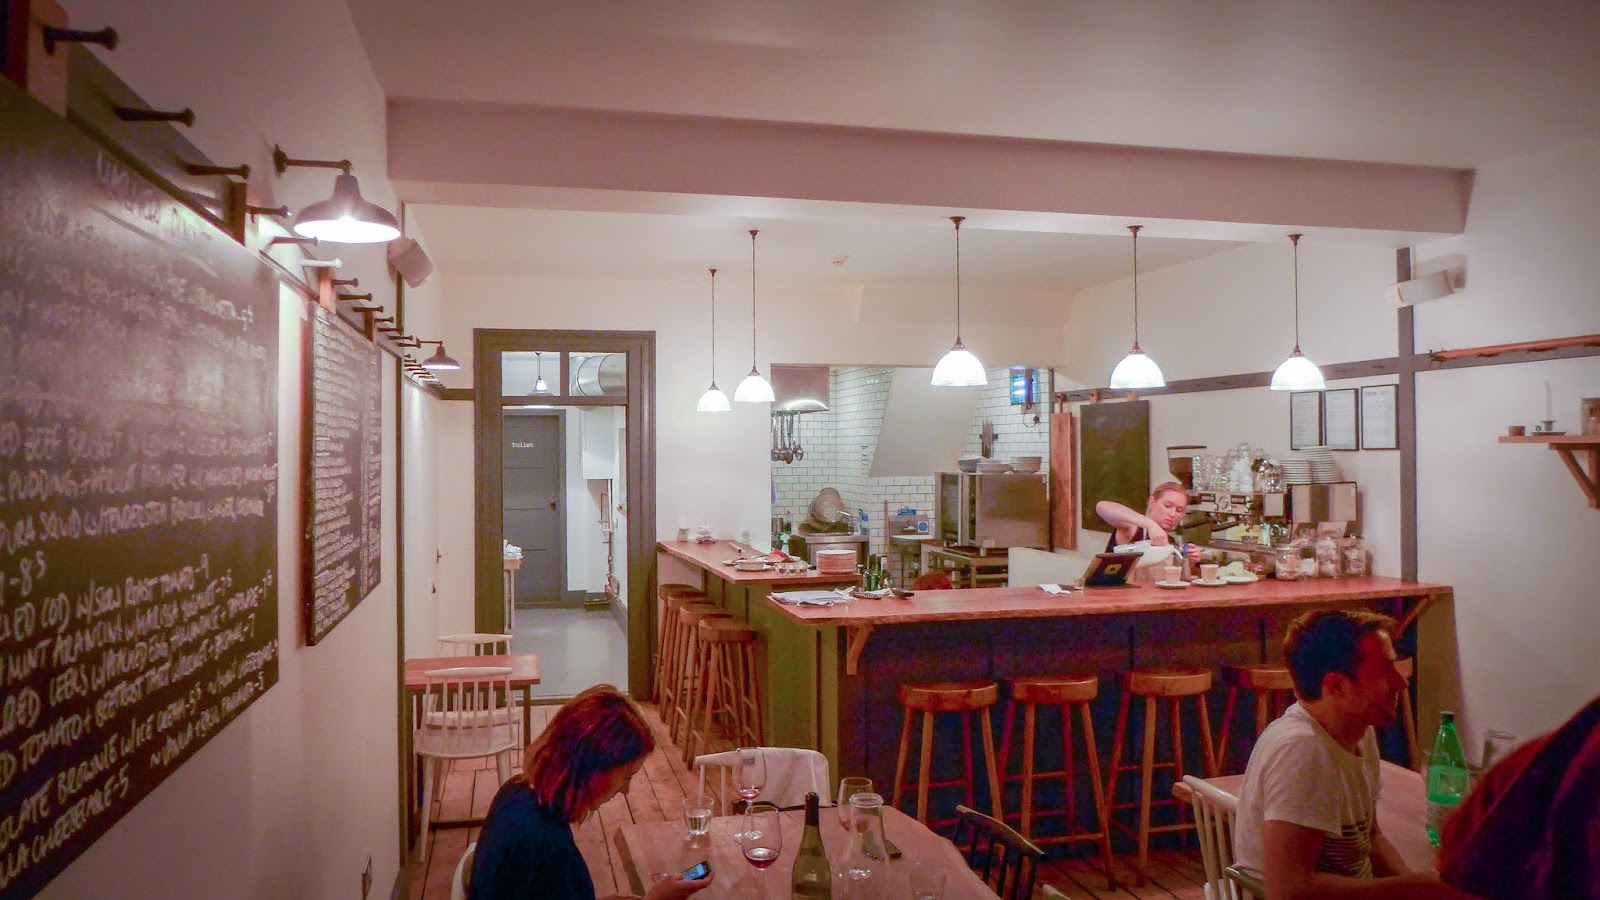 Patchy growth restaurant review marmelo kitchen leyton for V kitchen restaurant